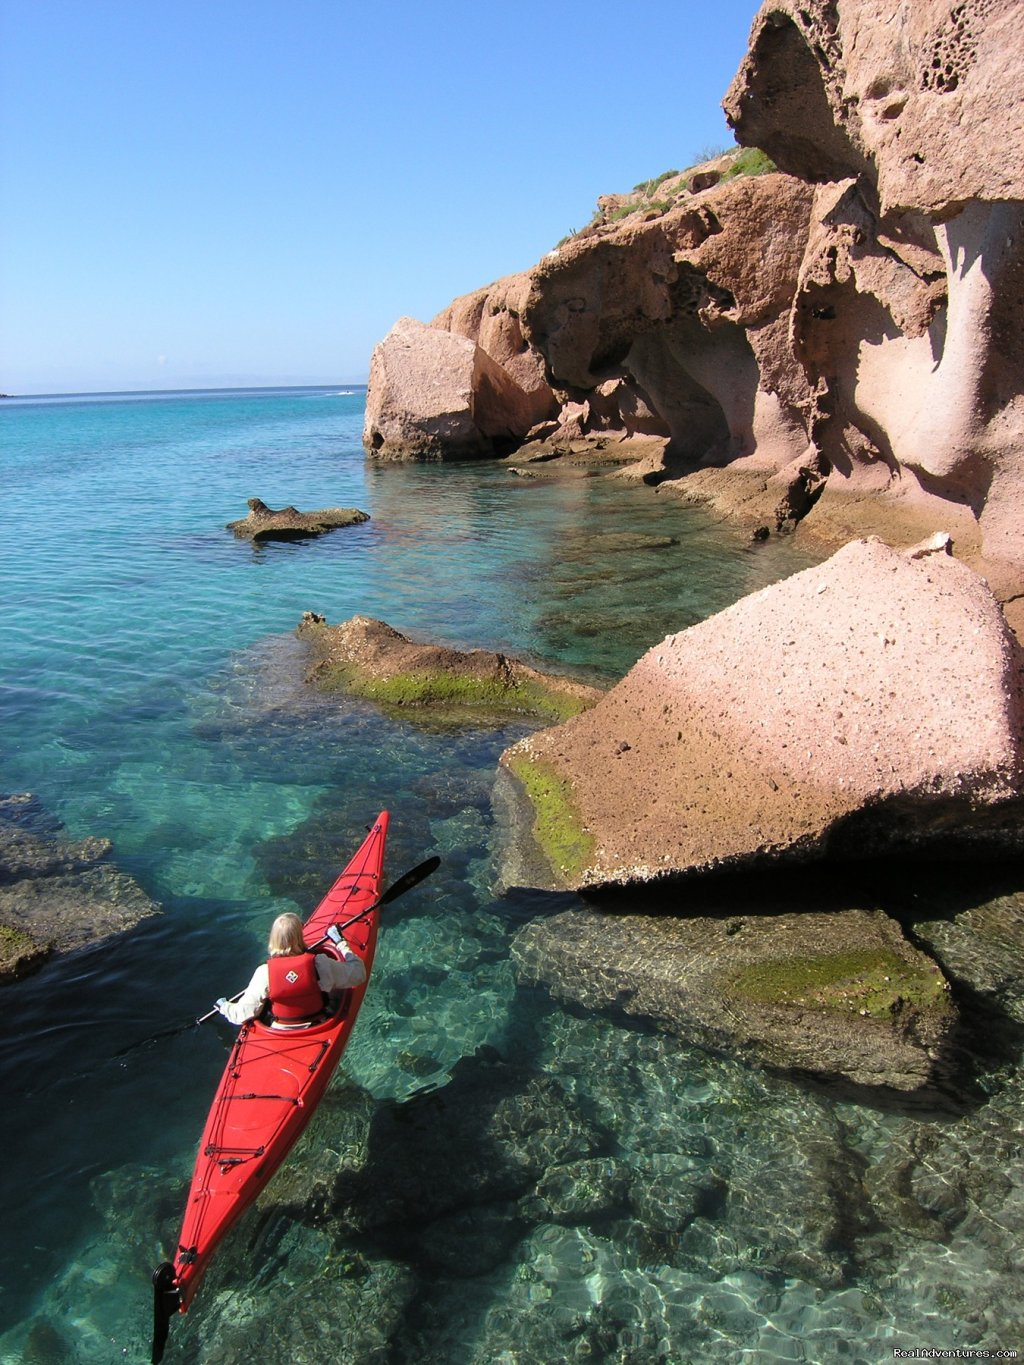 Kayaking Sea of Cortez - Baja, Mexico | Image #9/25 | Sea Kayak Vacations & Whale Adventures in Baja/BC